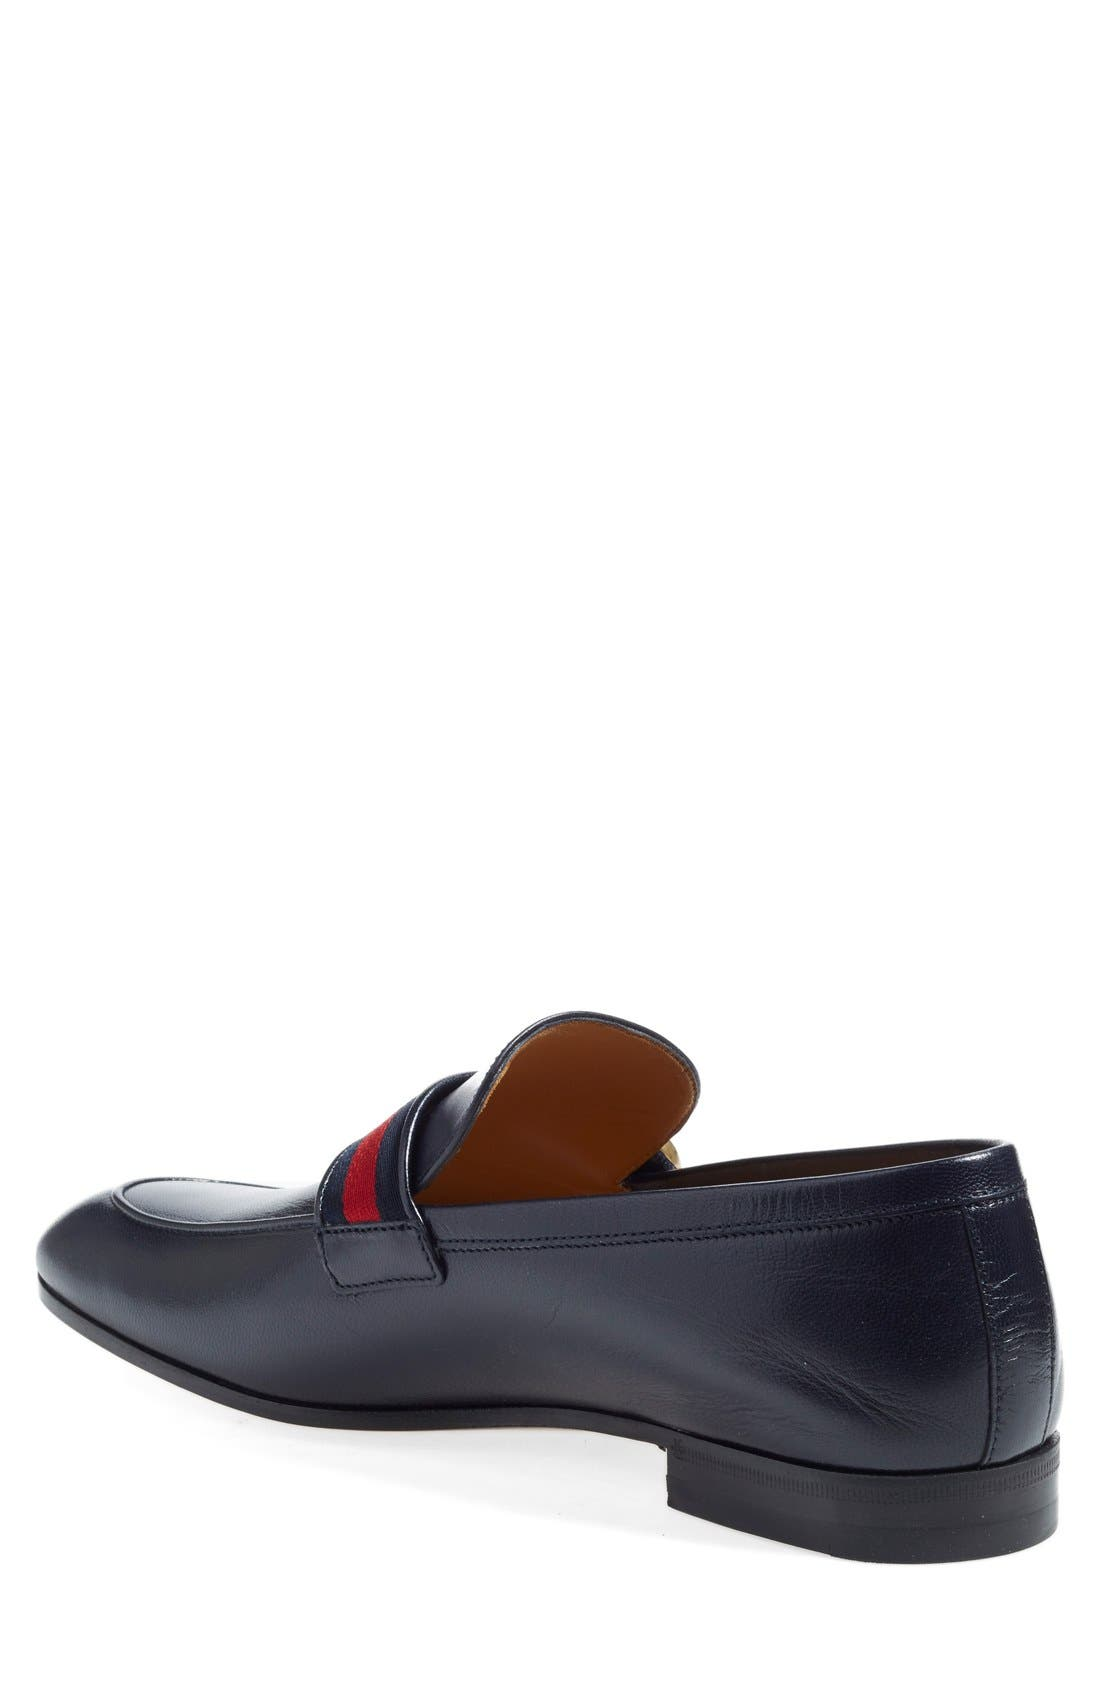 Donnie Bit Loafer,                             Alternate thumbnail 11, color,